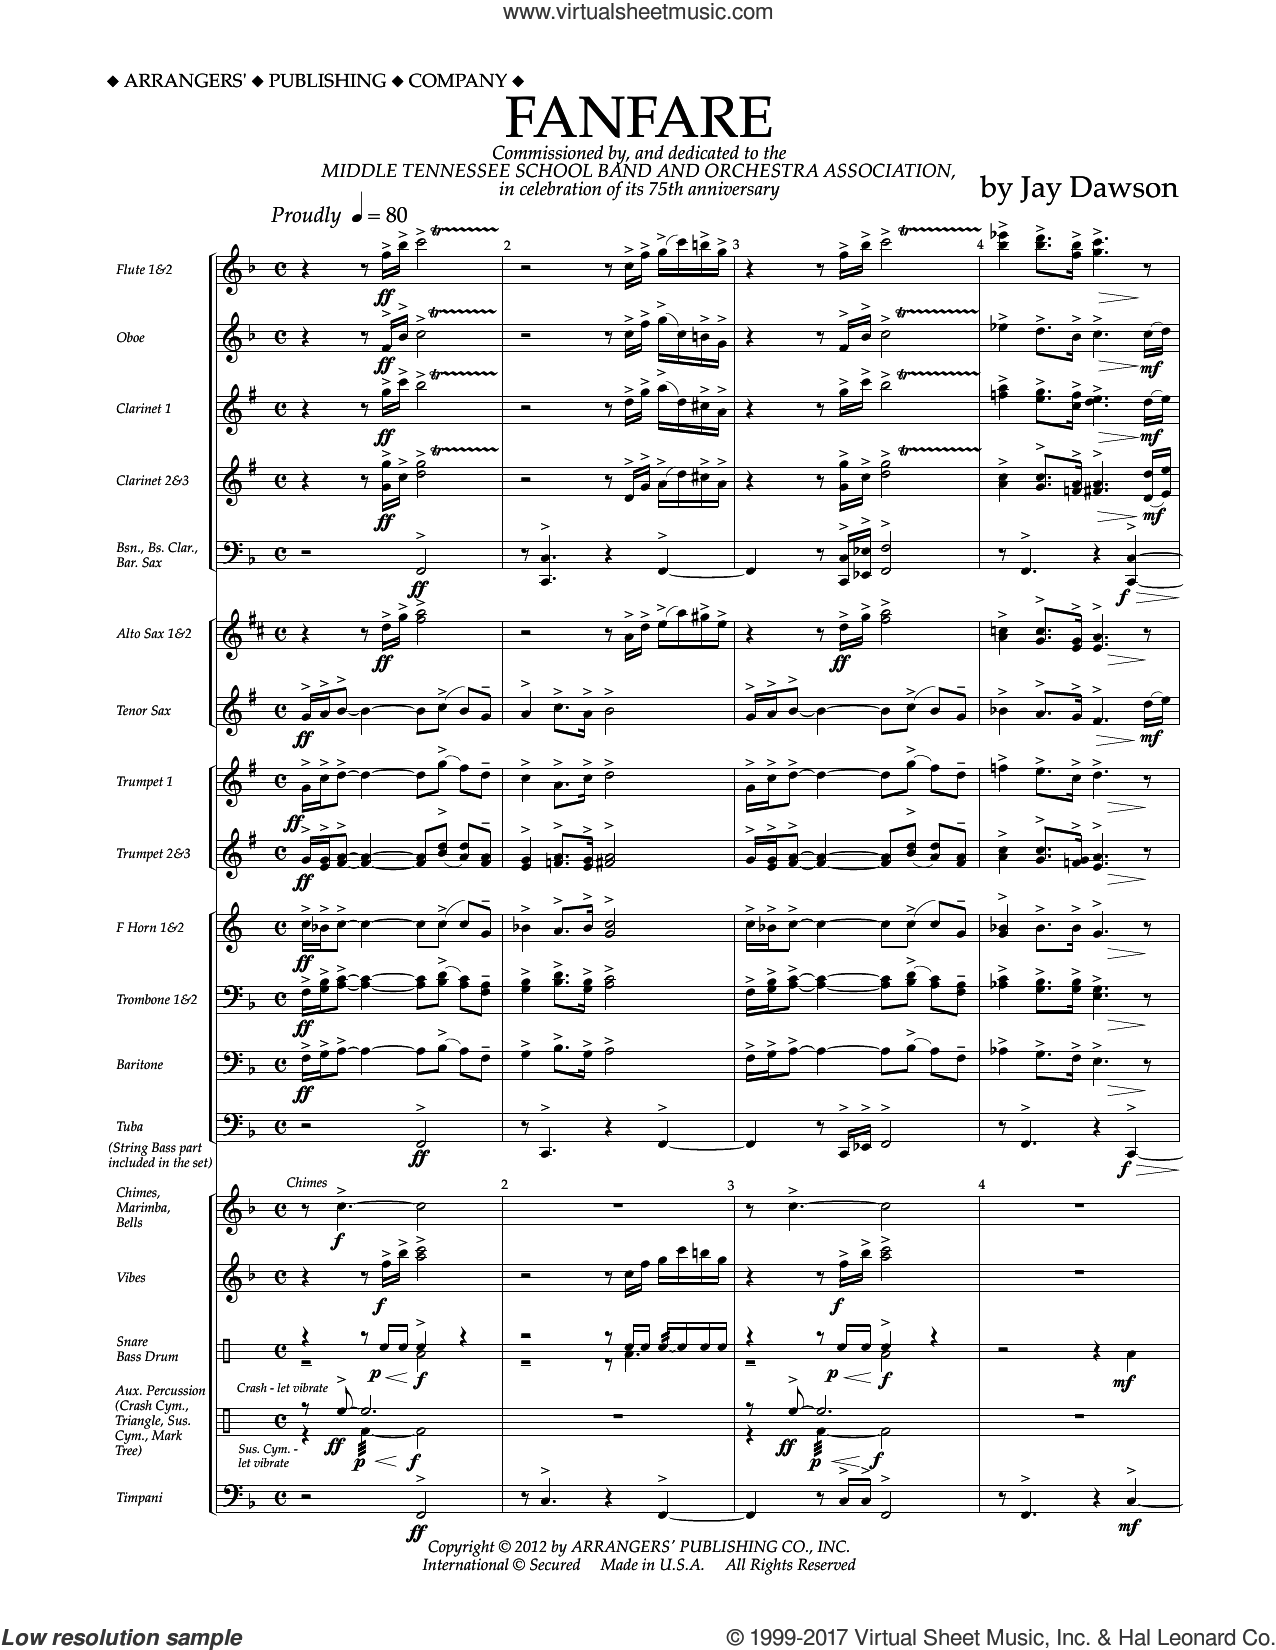 Fanfare (COMPLETE) sheet music for concert band by Jay Dawson, intermediate